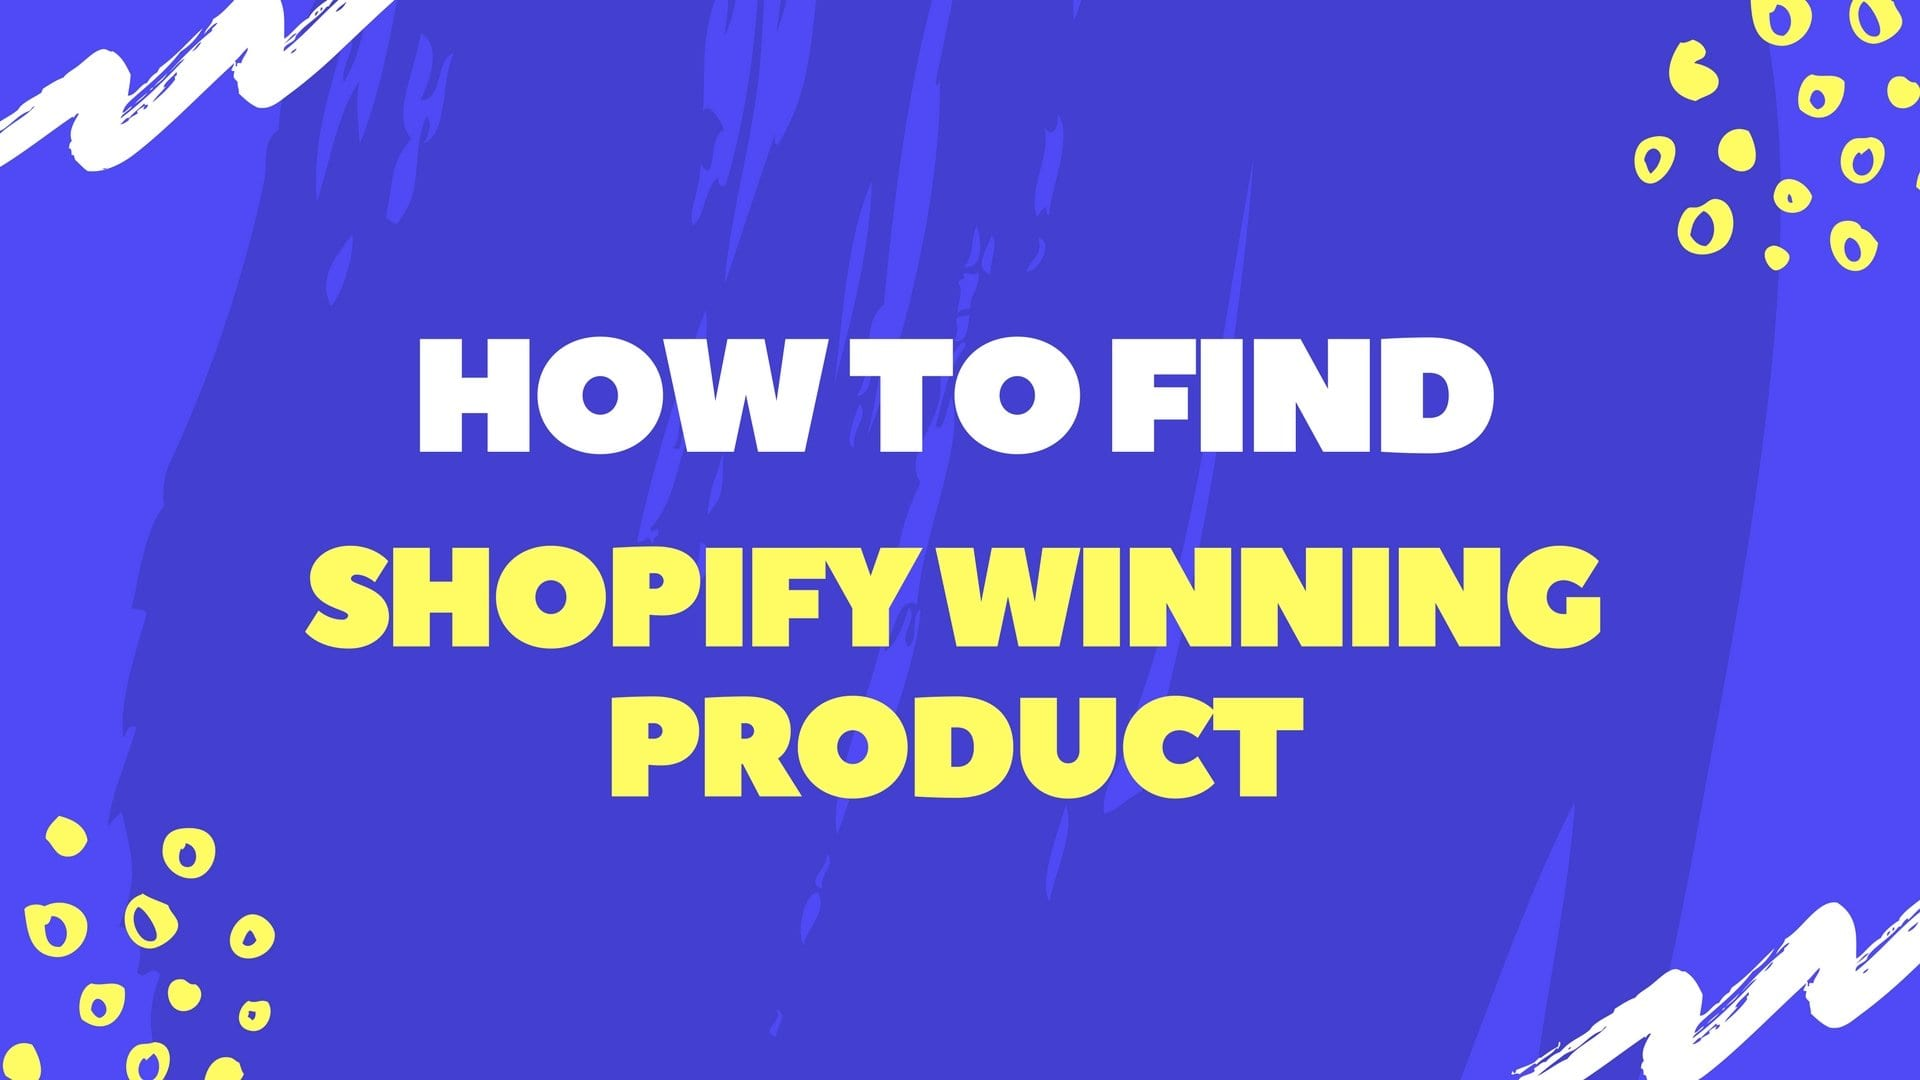 Killer Strategies to Find Shopify Winning Products & Shopify Best Sellers